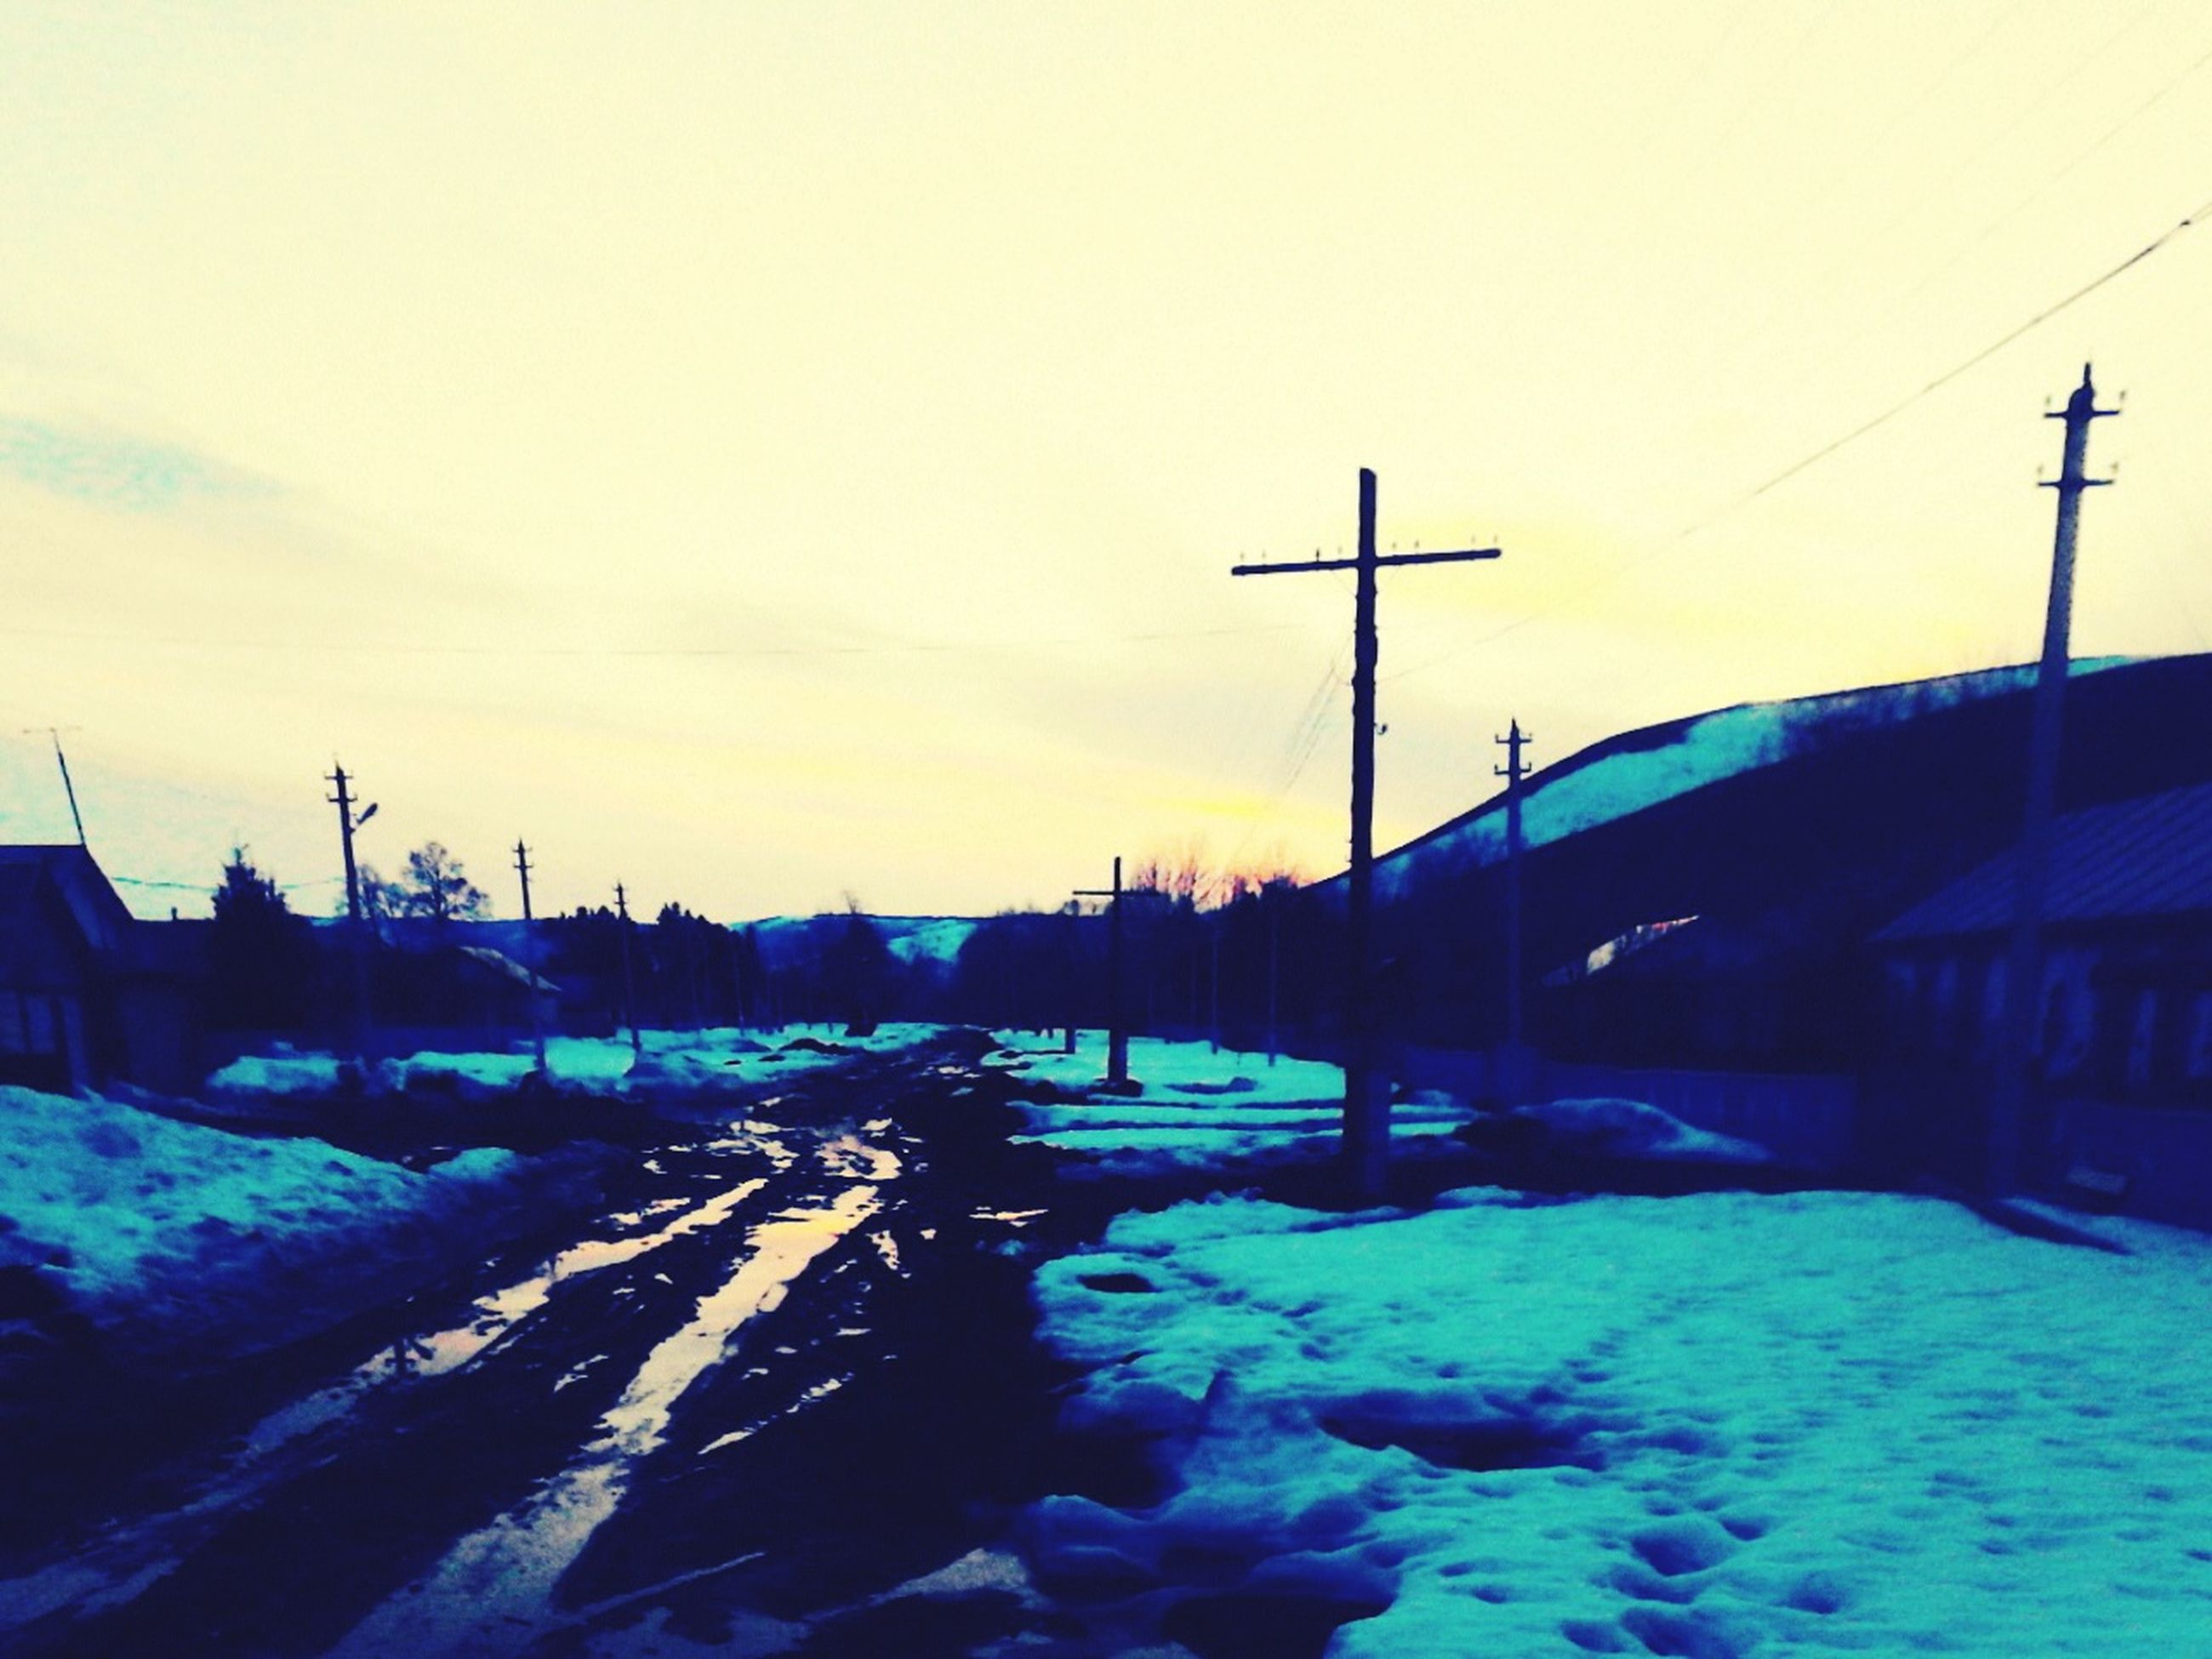 snow, winter, cold temperature, season, transportation, electricity pylon, building exterior, sunset, street light, built structure, power line, sky, weather, architecture, road, street, car, electricity, covering, mode of transport